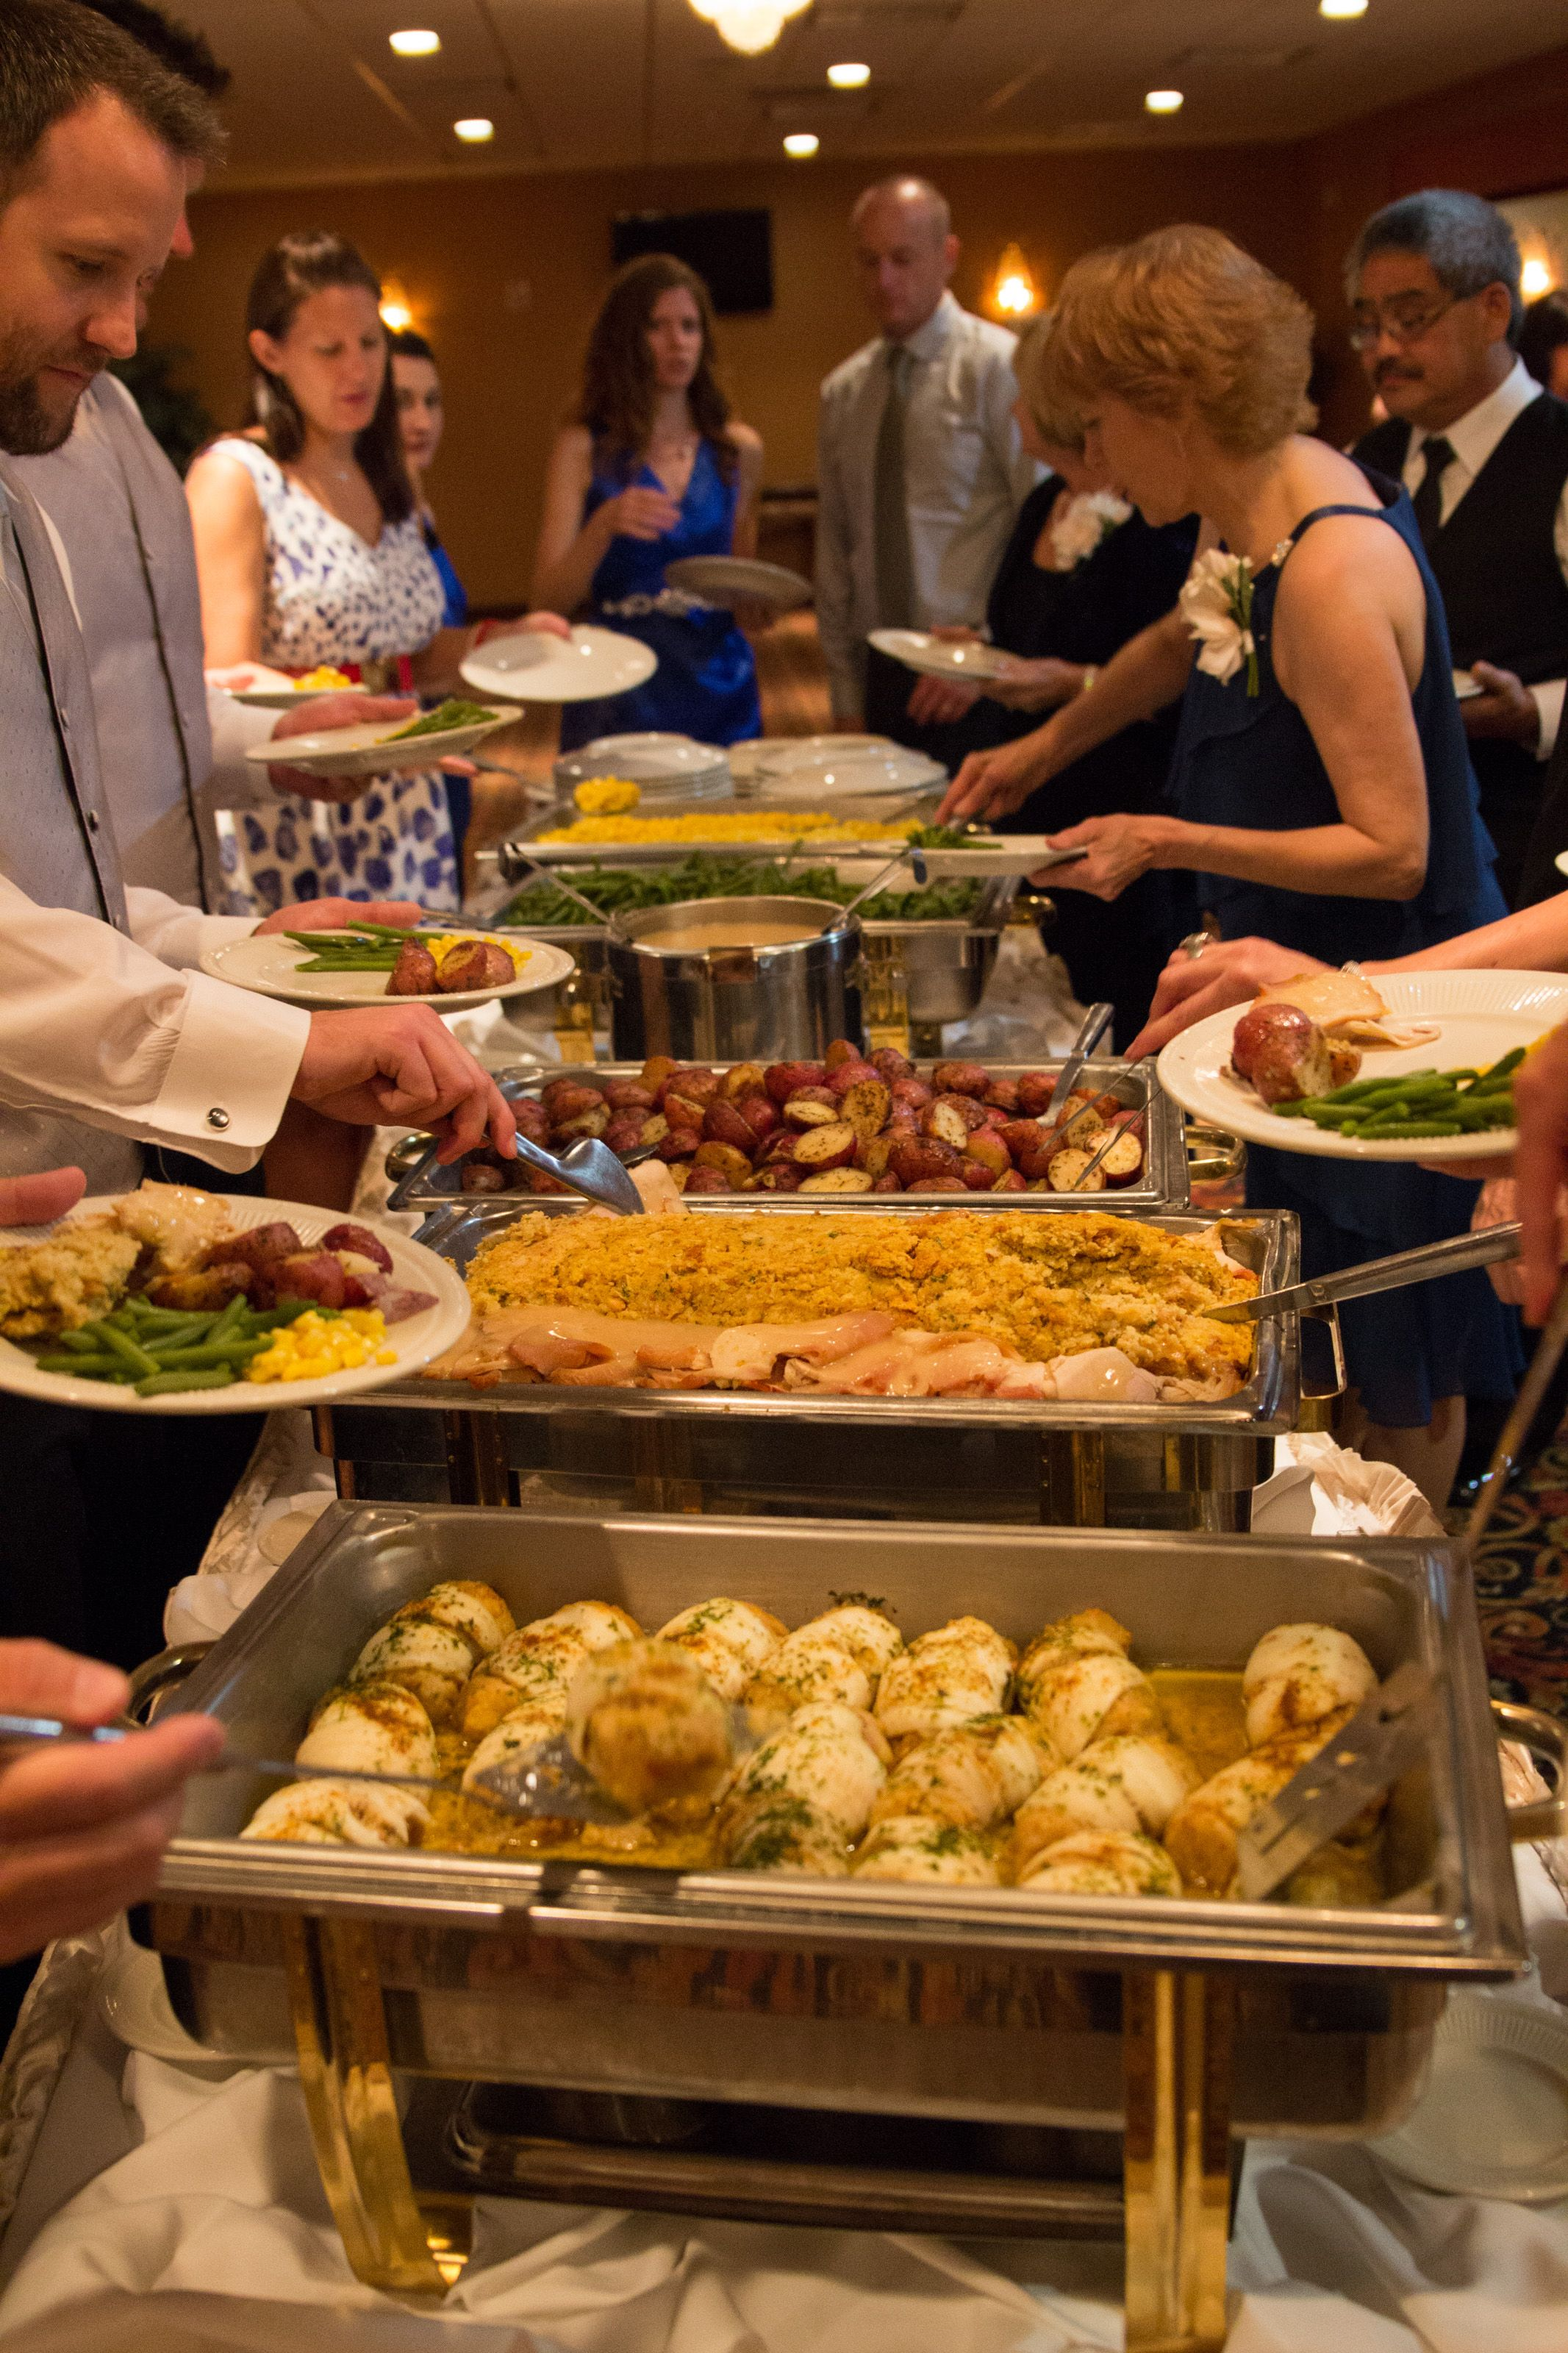 Wedding Reception FOOD! If You Are On A Budget (or Not